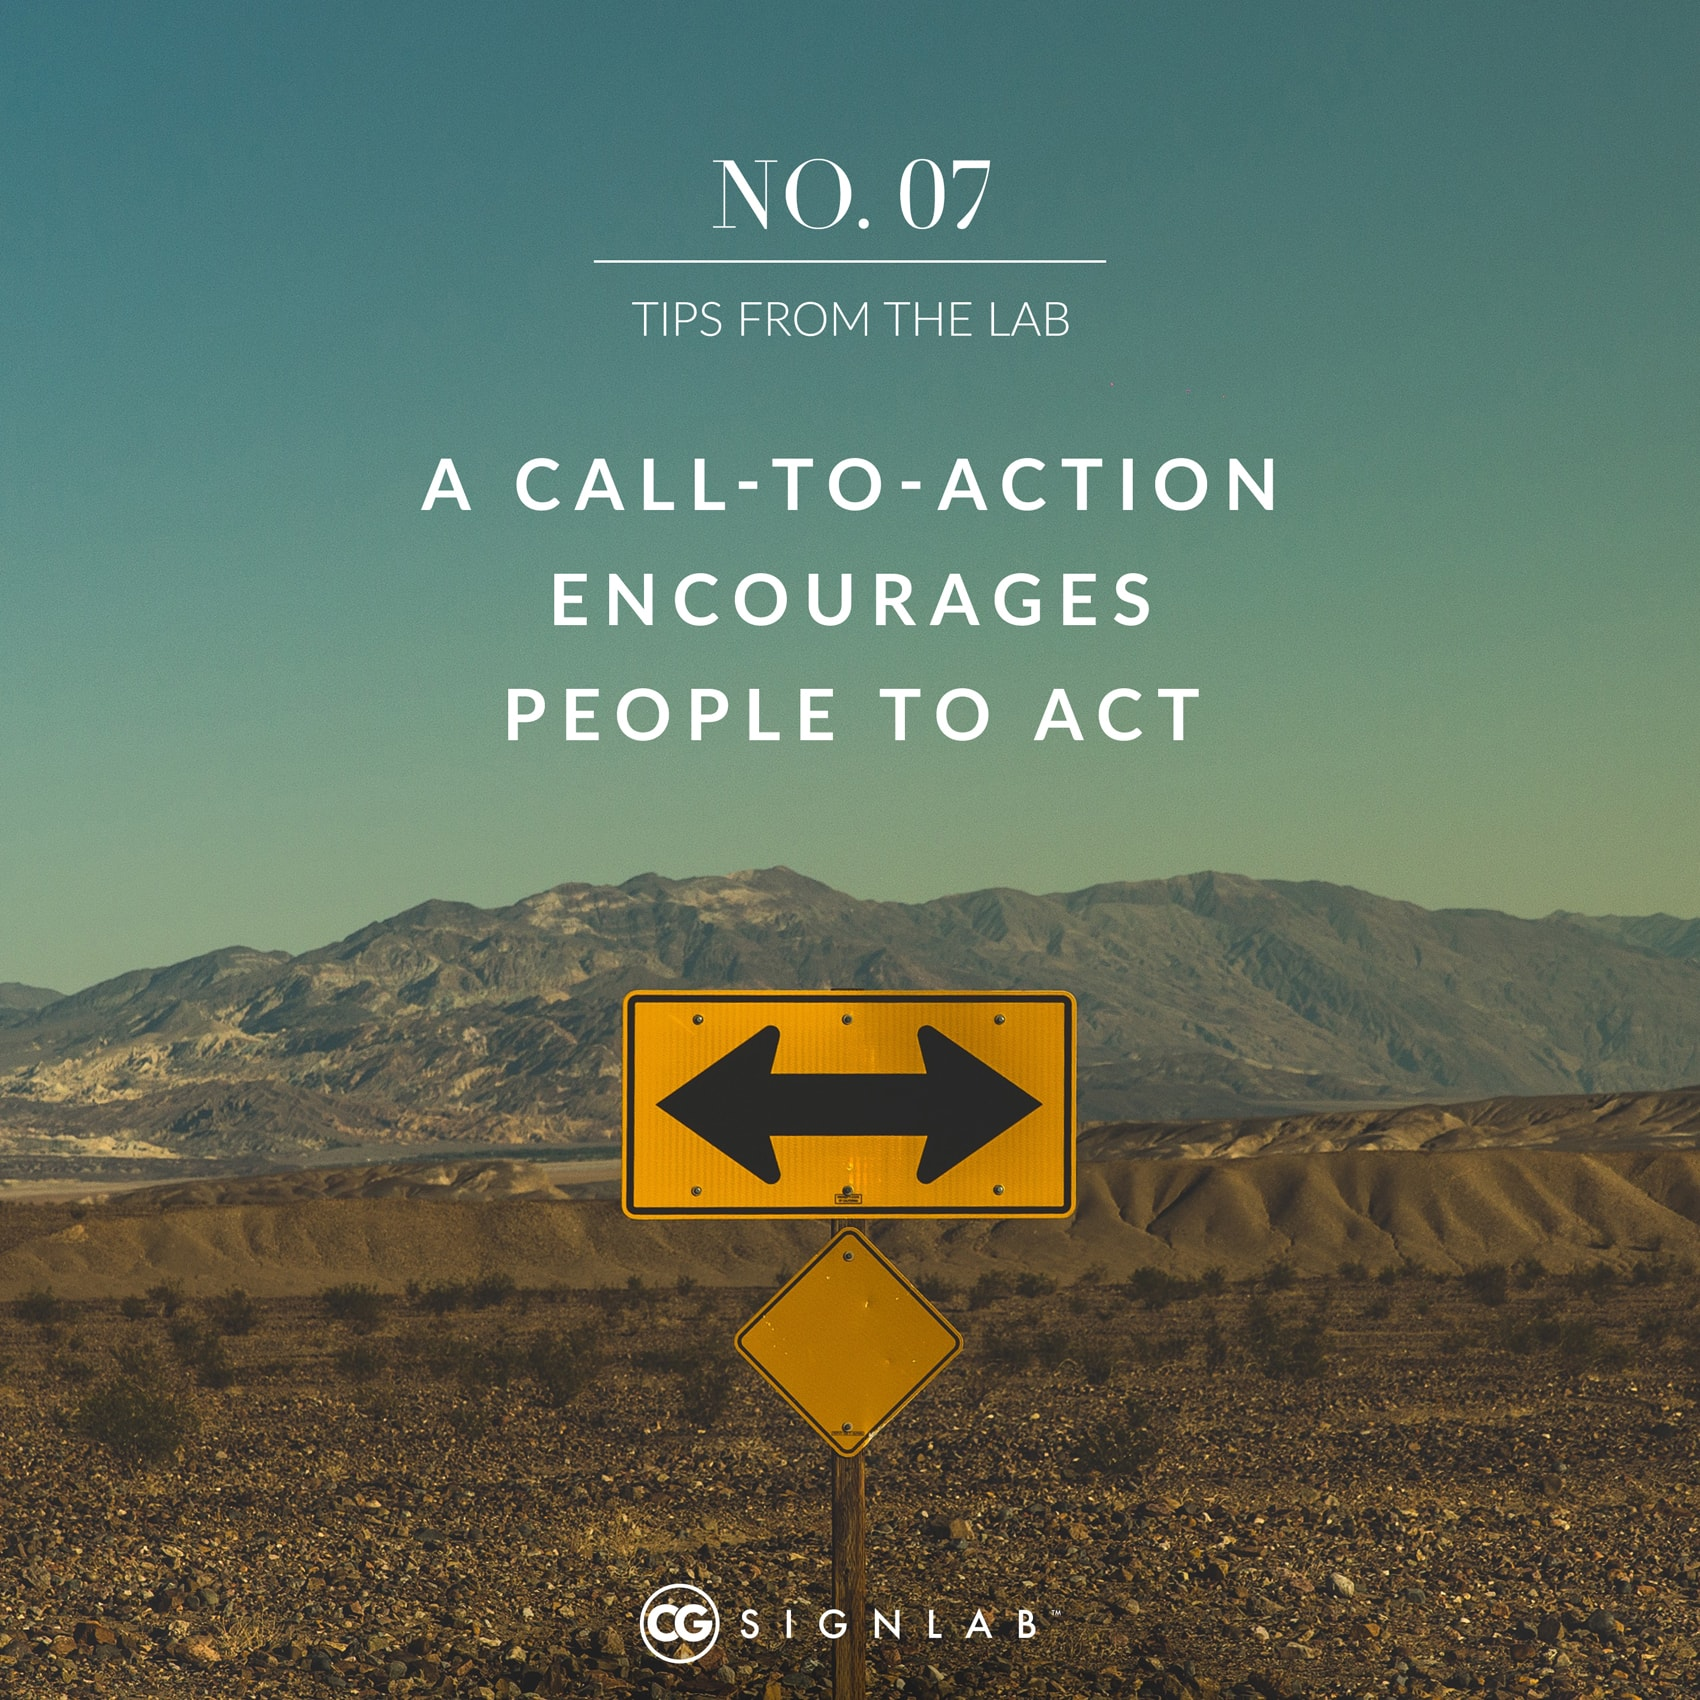 A Call-to-Action Encourages People to Act